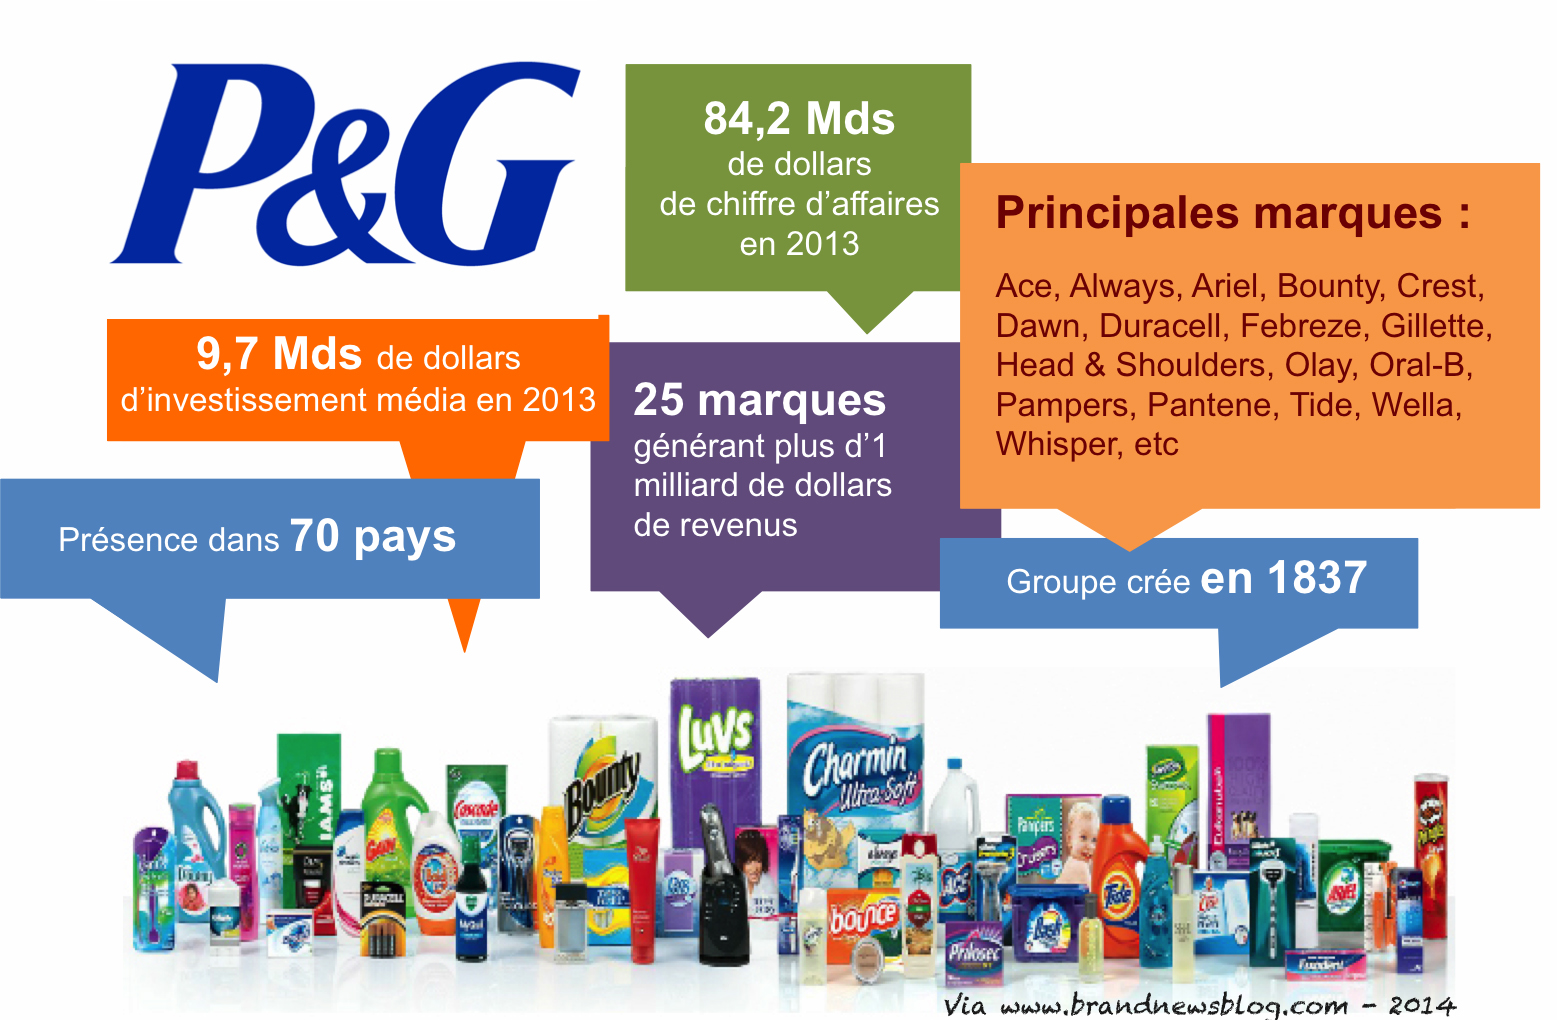 procter gamble Our humble beginnings 1830-1859 our story began with a simple handshake  between two men: william procter and james gamble as partners, they put their .